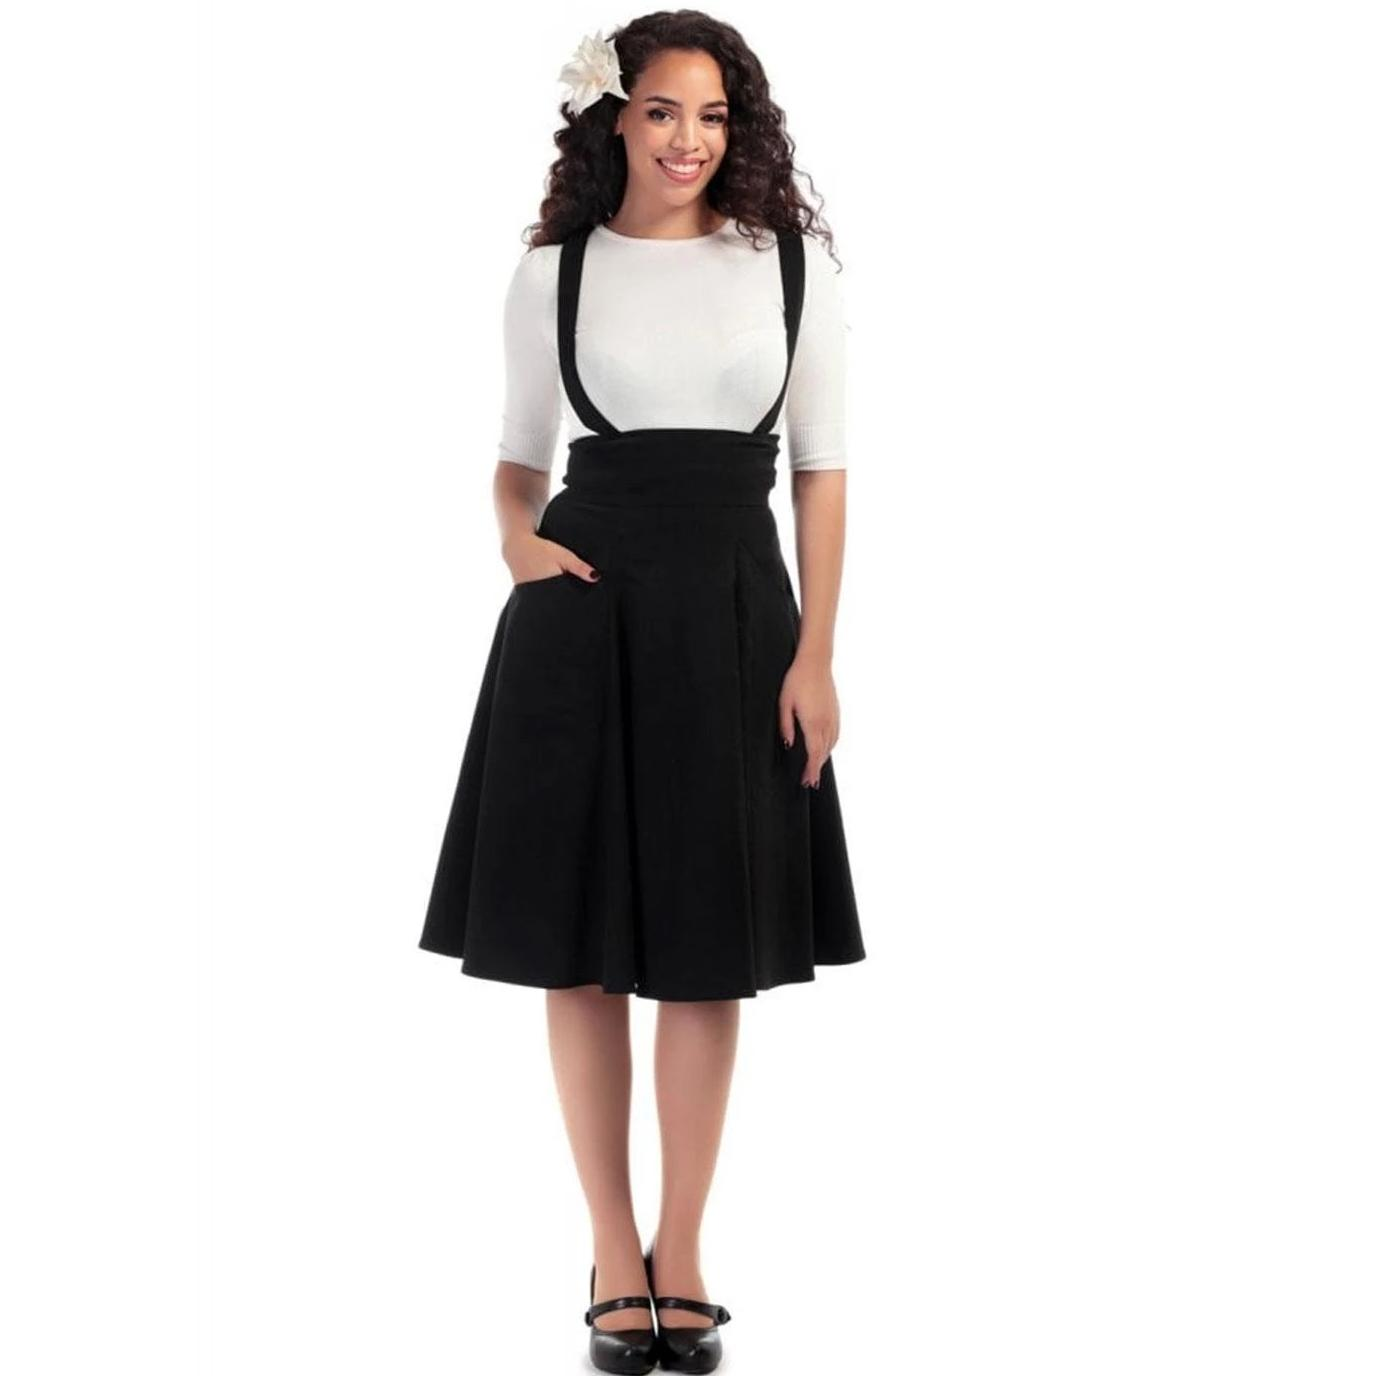 Collectif Mainline Plain Swing Skirt Black-Black-Vendemia